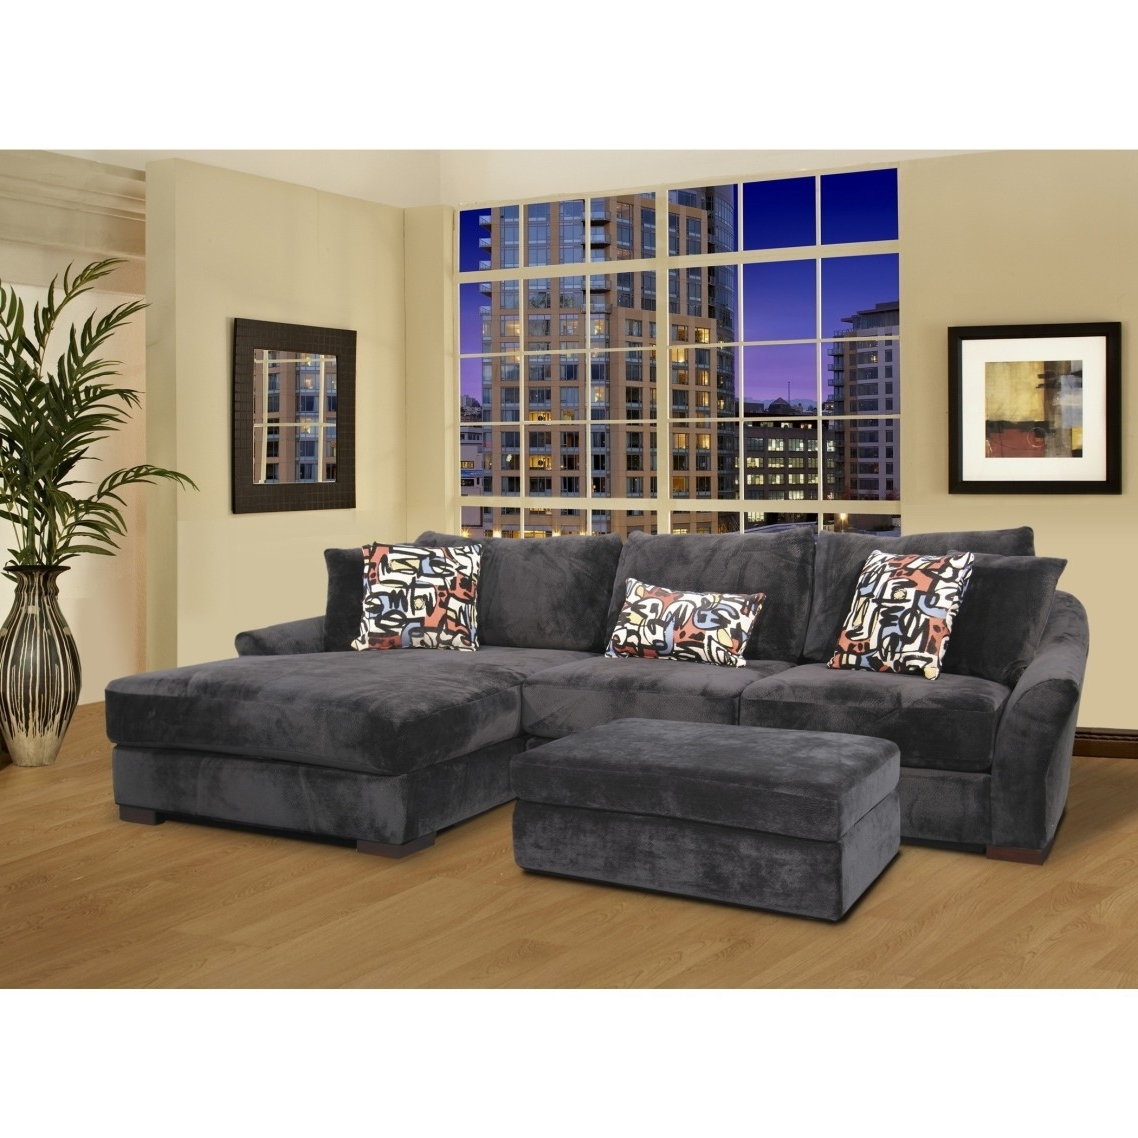 Most Recent Gray Velvet Oversized Sectional Sleeper Sofa With Left Chaise Within Gilbert Az Sectional Sofas (View 18 of 20)